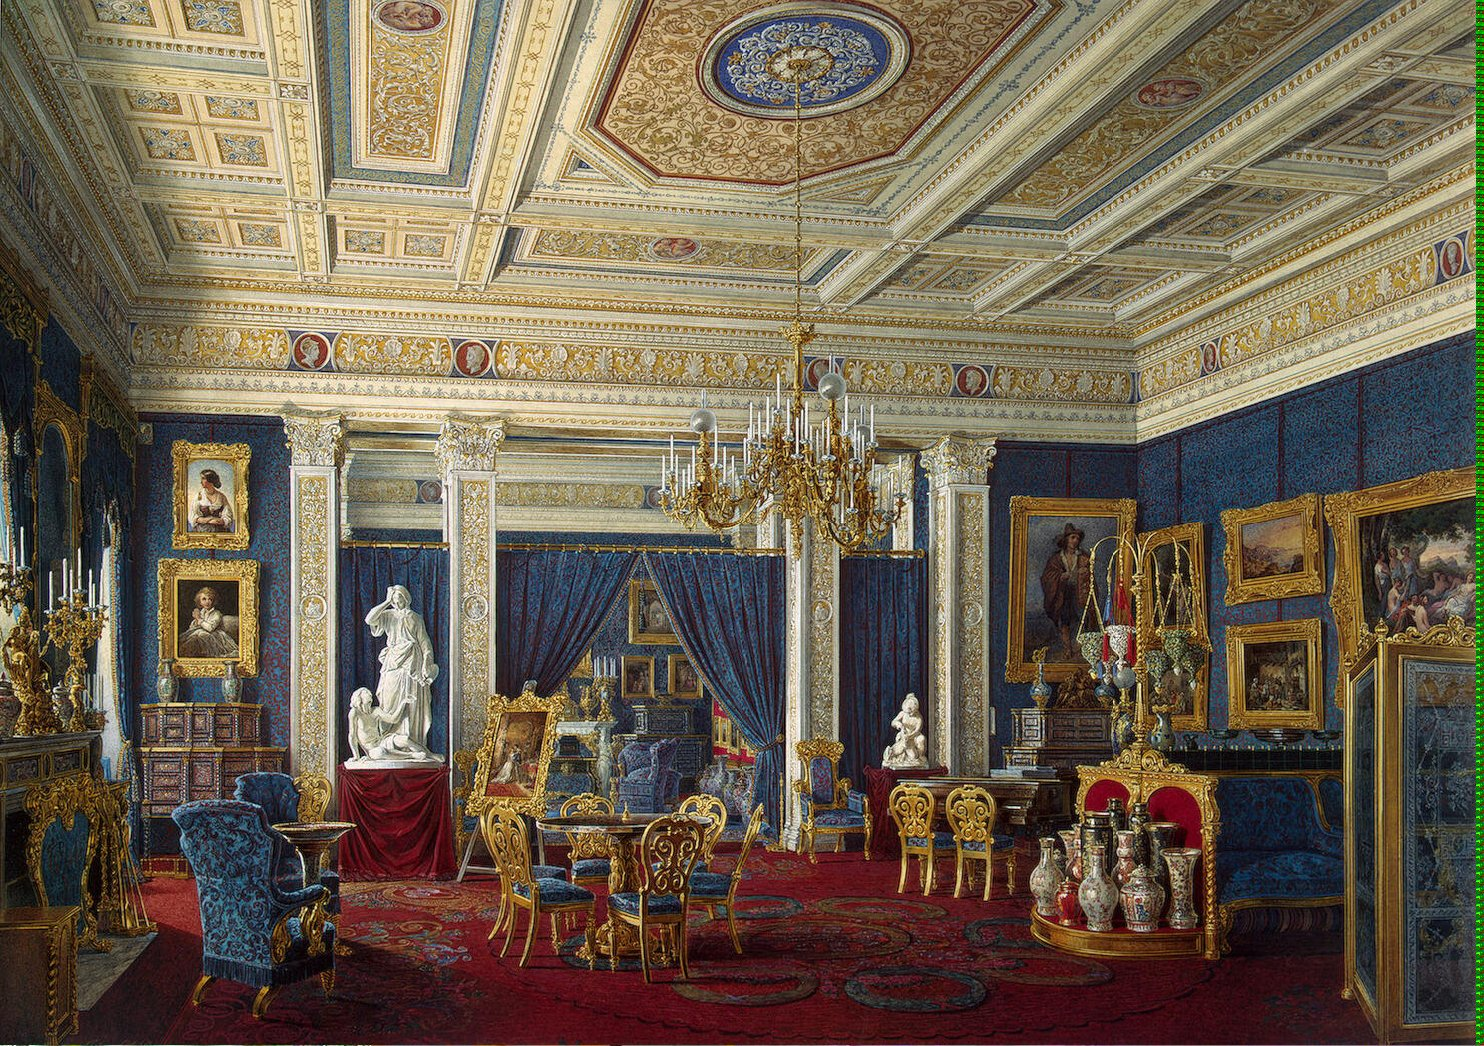 Blue Drawing-Room in the Mariinsky Palace by Eduard Hau (mid 19th century).